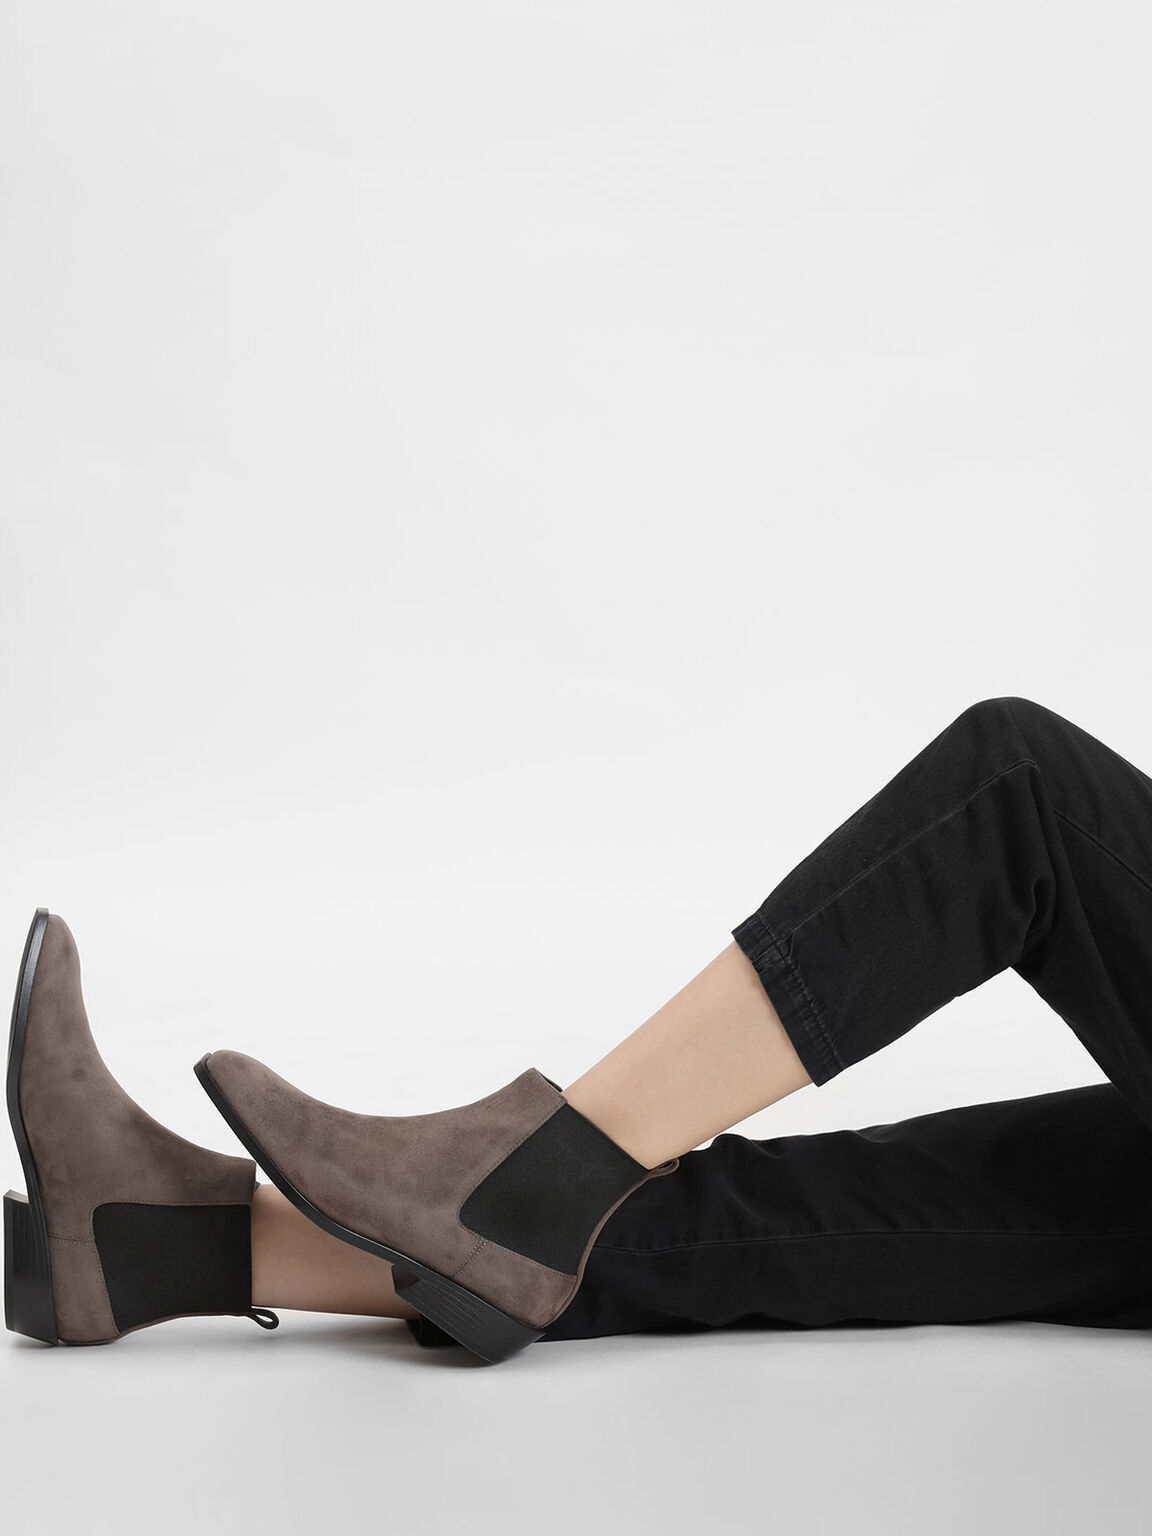 Classic Ankle Boots, Taupe, hi-res